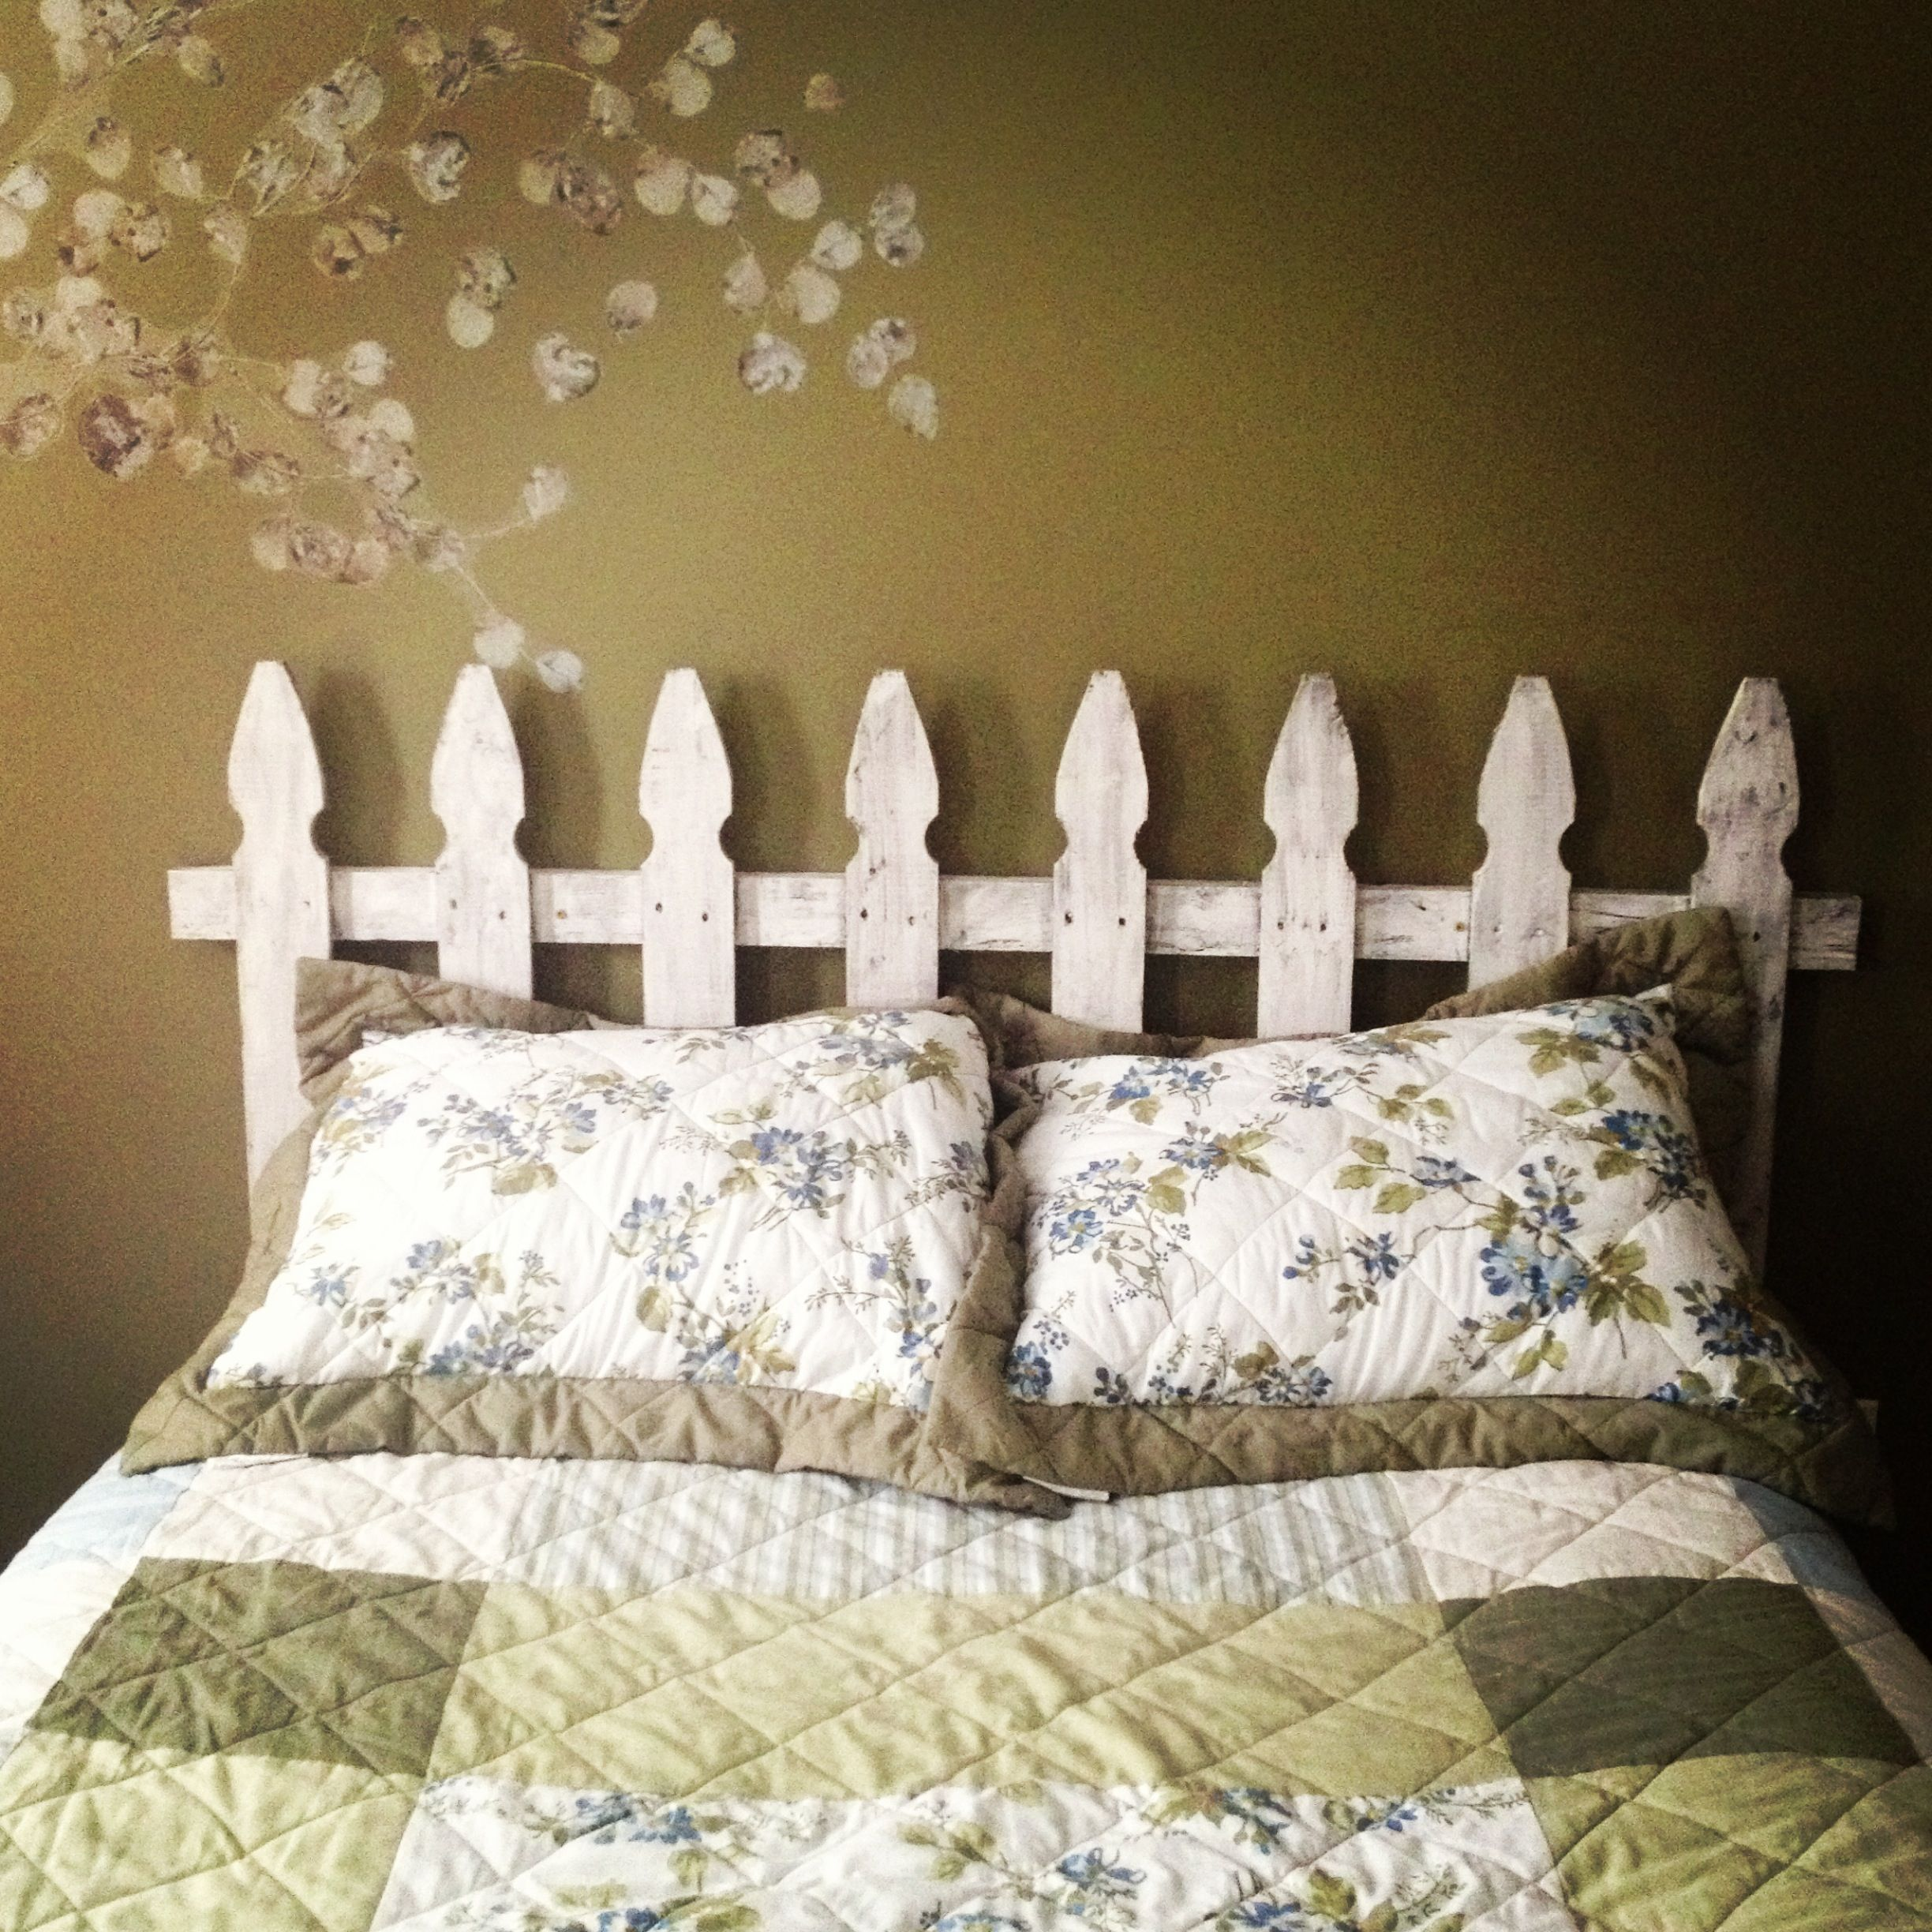 Picket Fence Headboard Fence Headboard Headboard Decor Picket